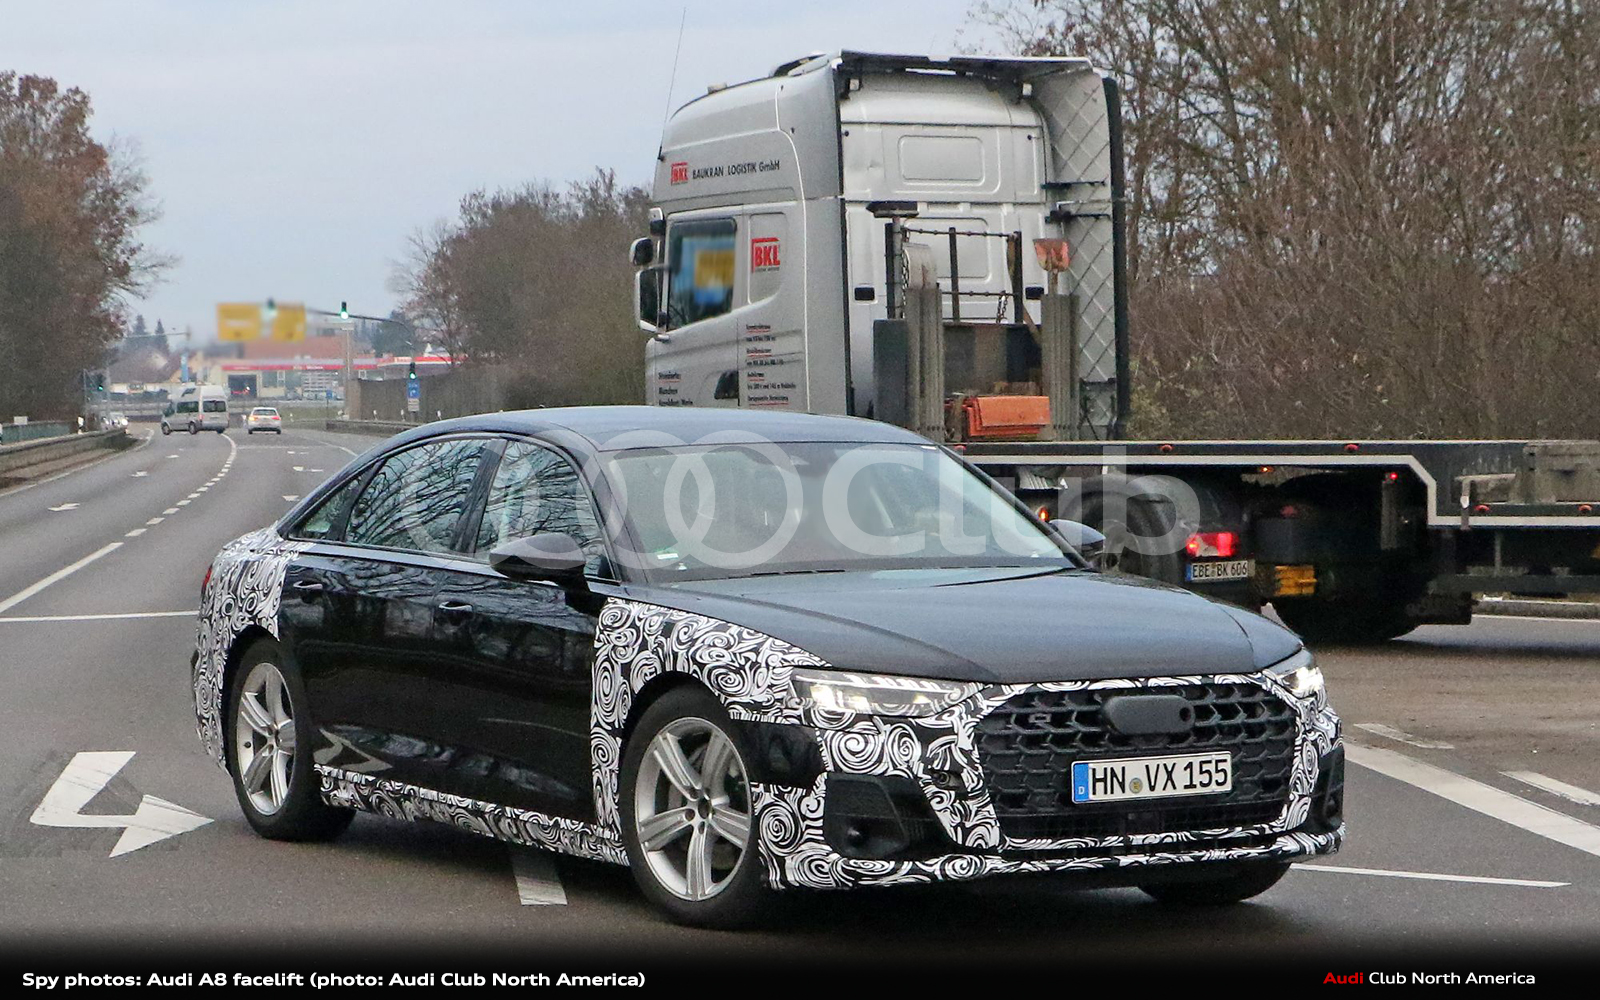 Spy Photo: 2022 Audi A8 Facelift